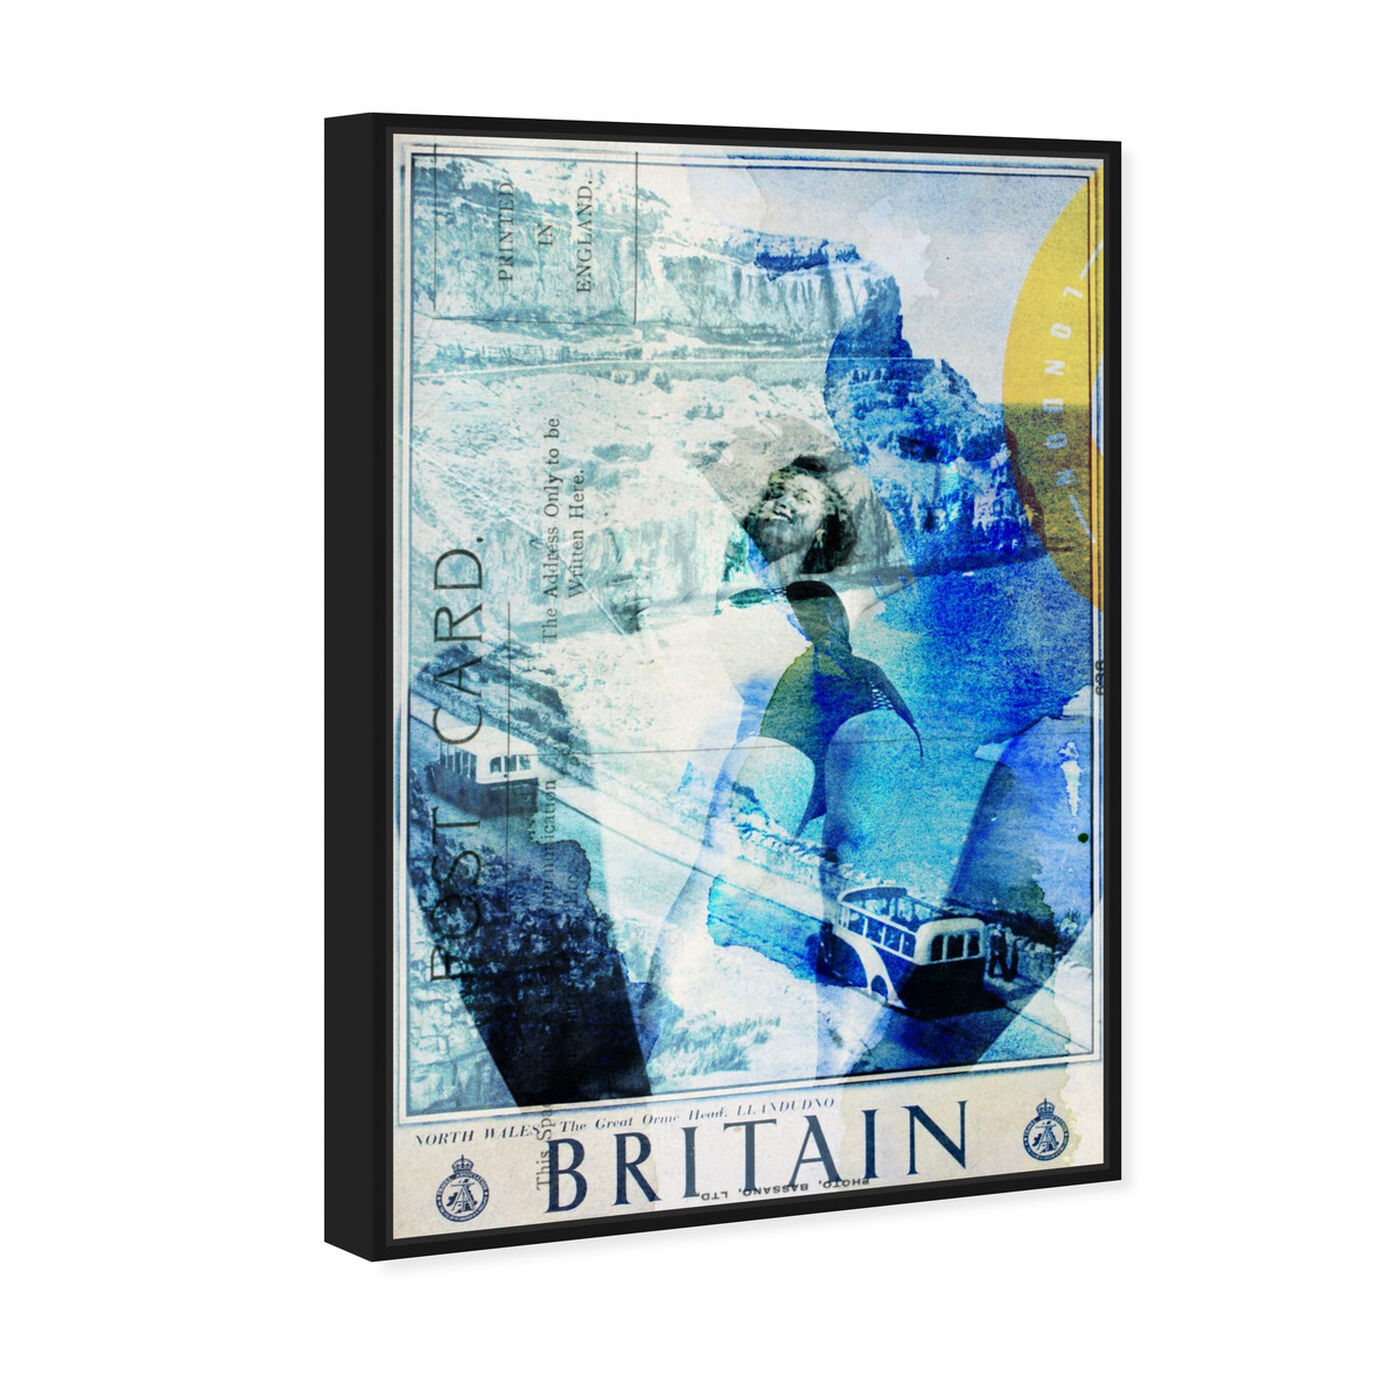 Angled view of Britain featuring advertising and posters art.